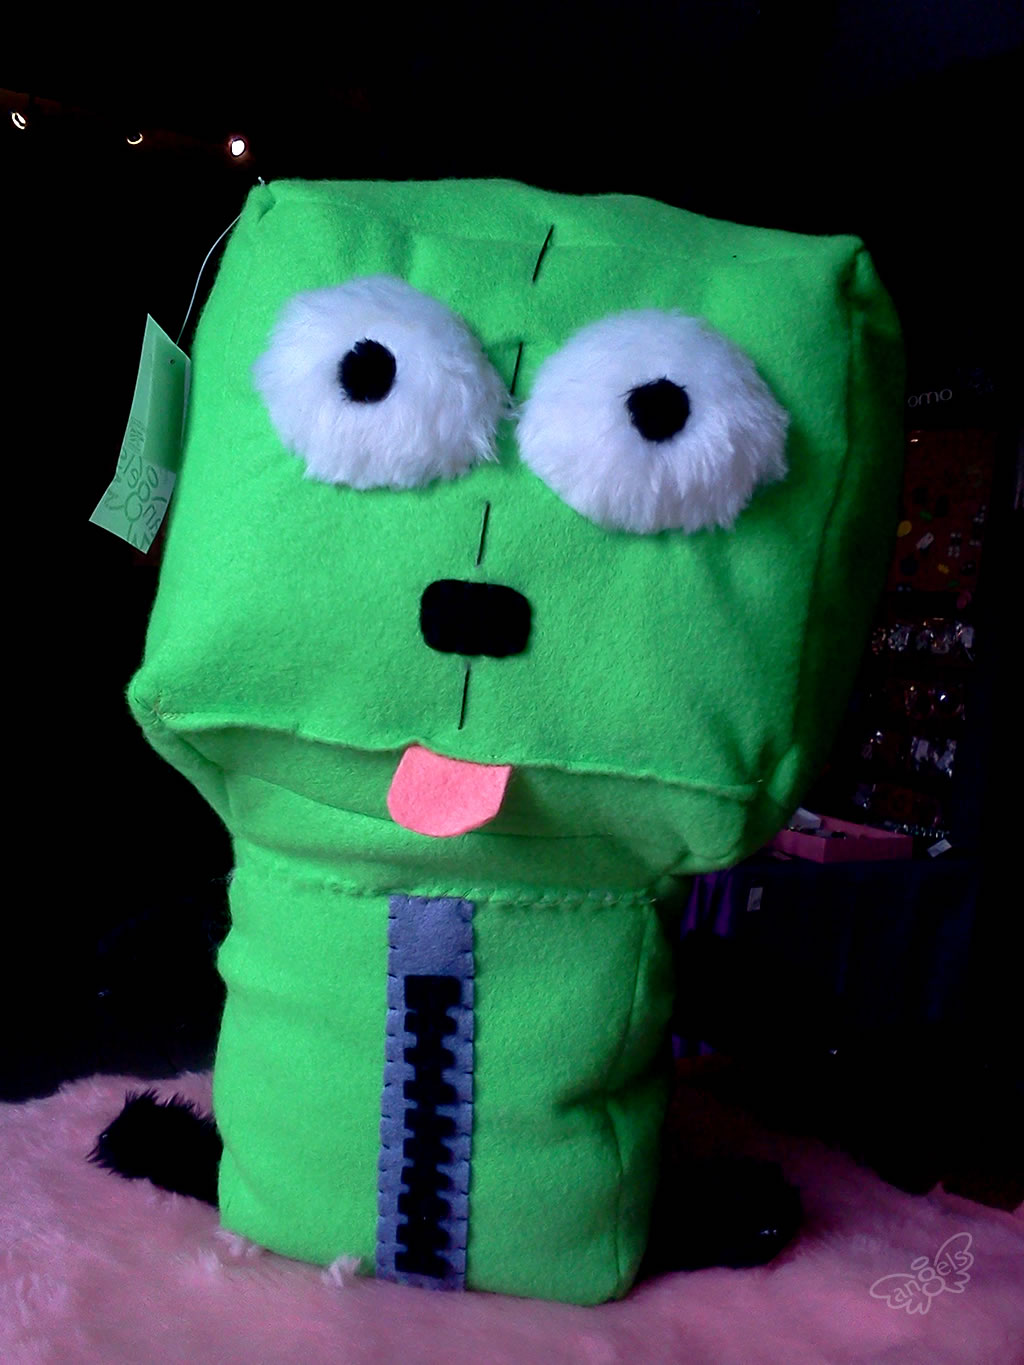 invader zim peluche - angelsproject